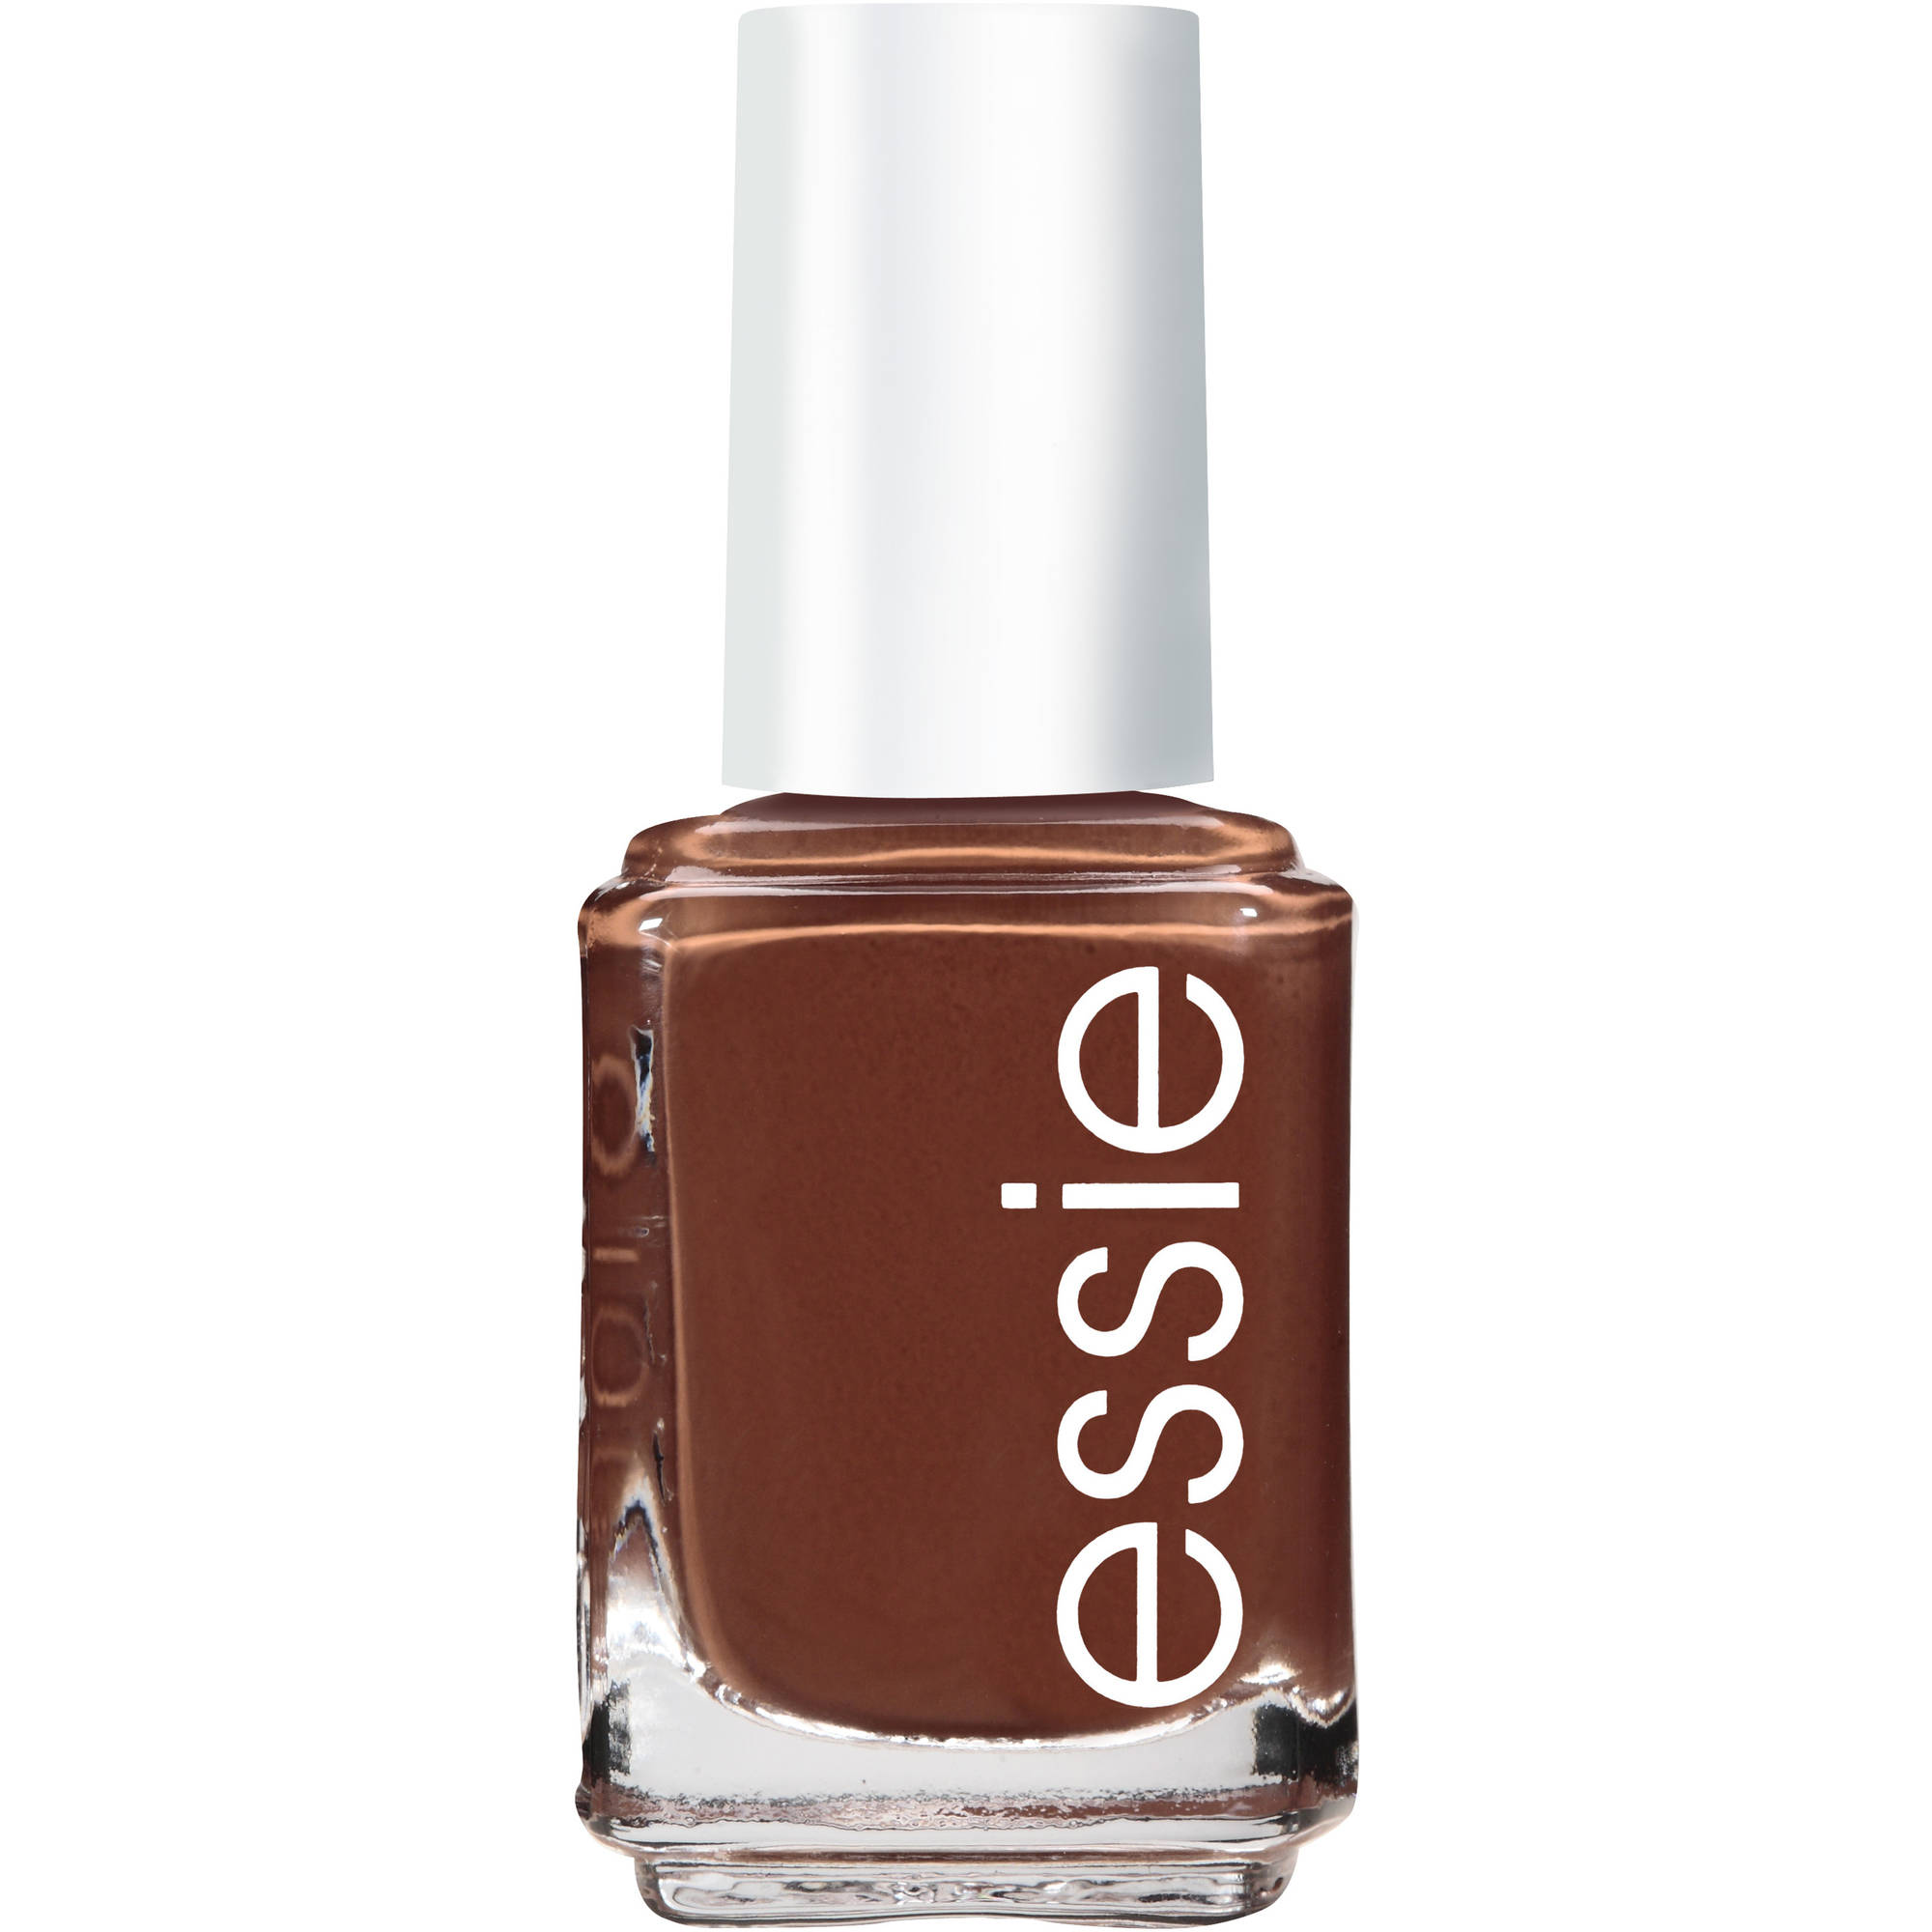 Essie: Very Structured Nail Color, .46 Fl Oz